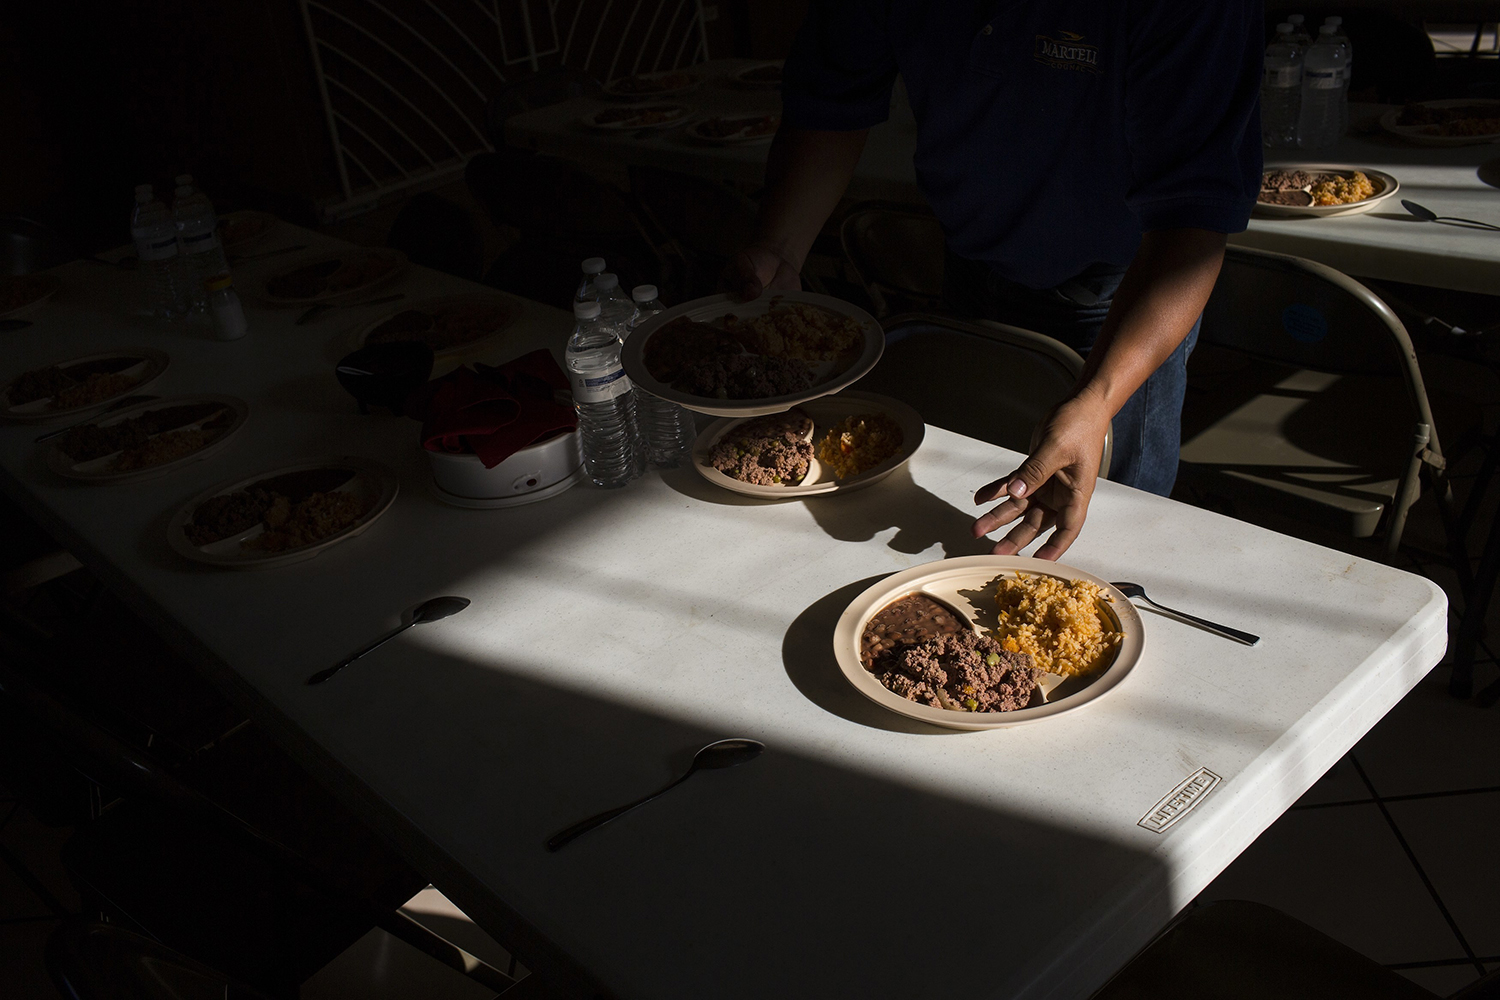 "Migrants have a dinner of rice and beans at the migrant shelter ""Casa del Migrante"" in Nuevo Laredo, Tamaulipas state, Mexico, Saturday, March 25, 2017, across the border from Laredo, Texas. Some Cubans have been stuck here since then-President Barack Obama on Jan. 12 ended the so-called ""wet foot, dry foot"" policy that had given Cubans a privileged path to the U.S. Until then, nearly any Cubans reaching U.S. soil had the right to stay, but now they are treated like migrants from other nations, facing a much tougher barrier. (AP Photo/Rodrigo Abd)"